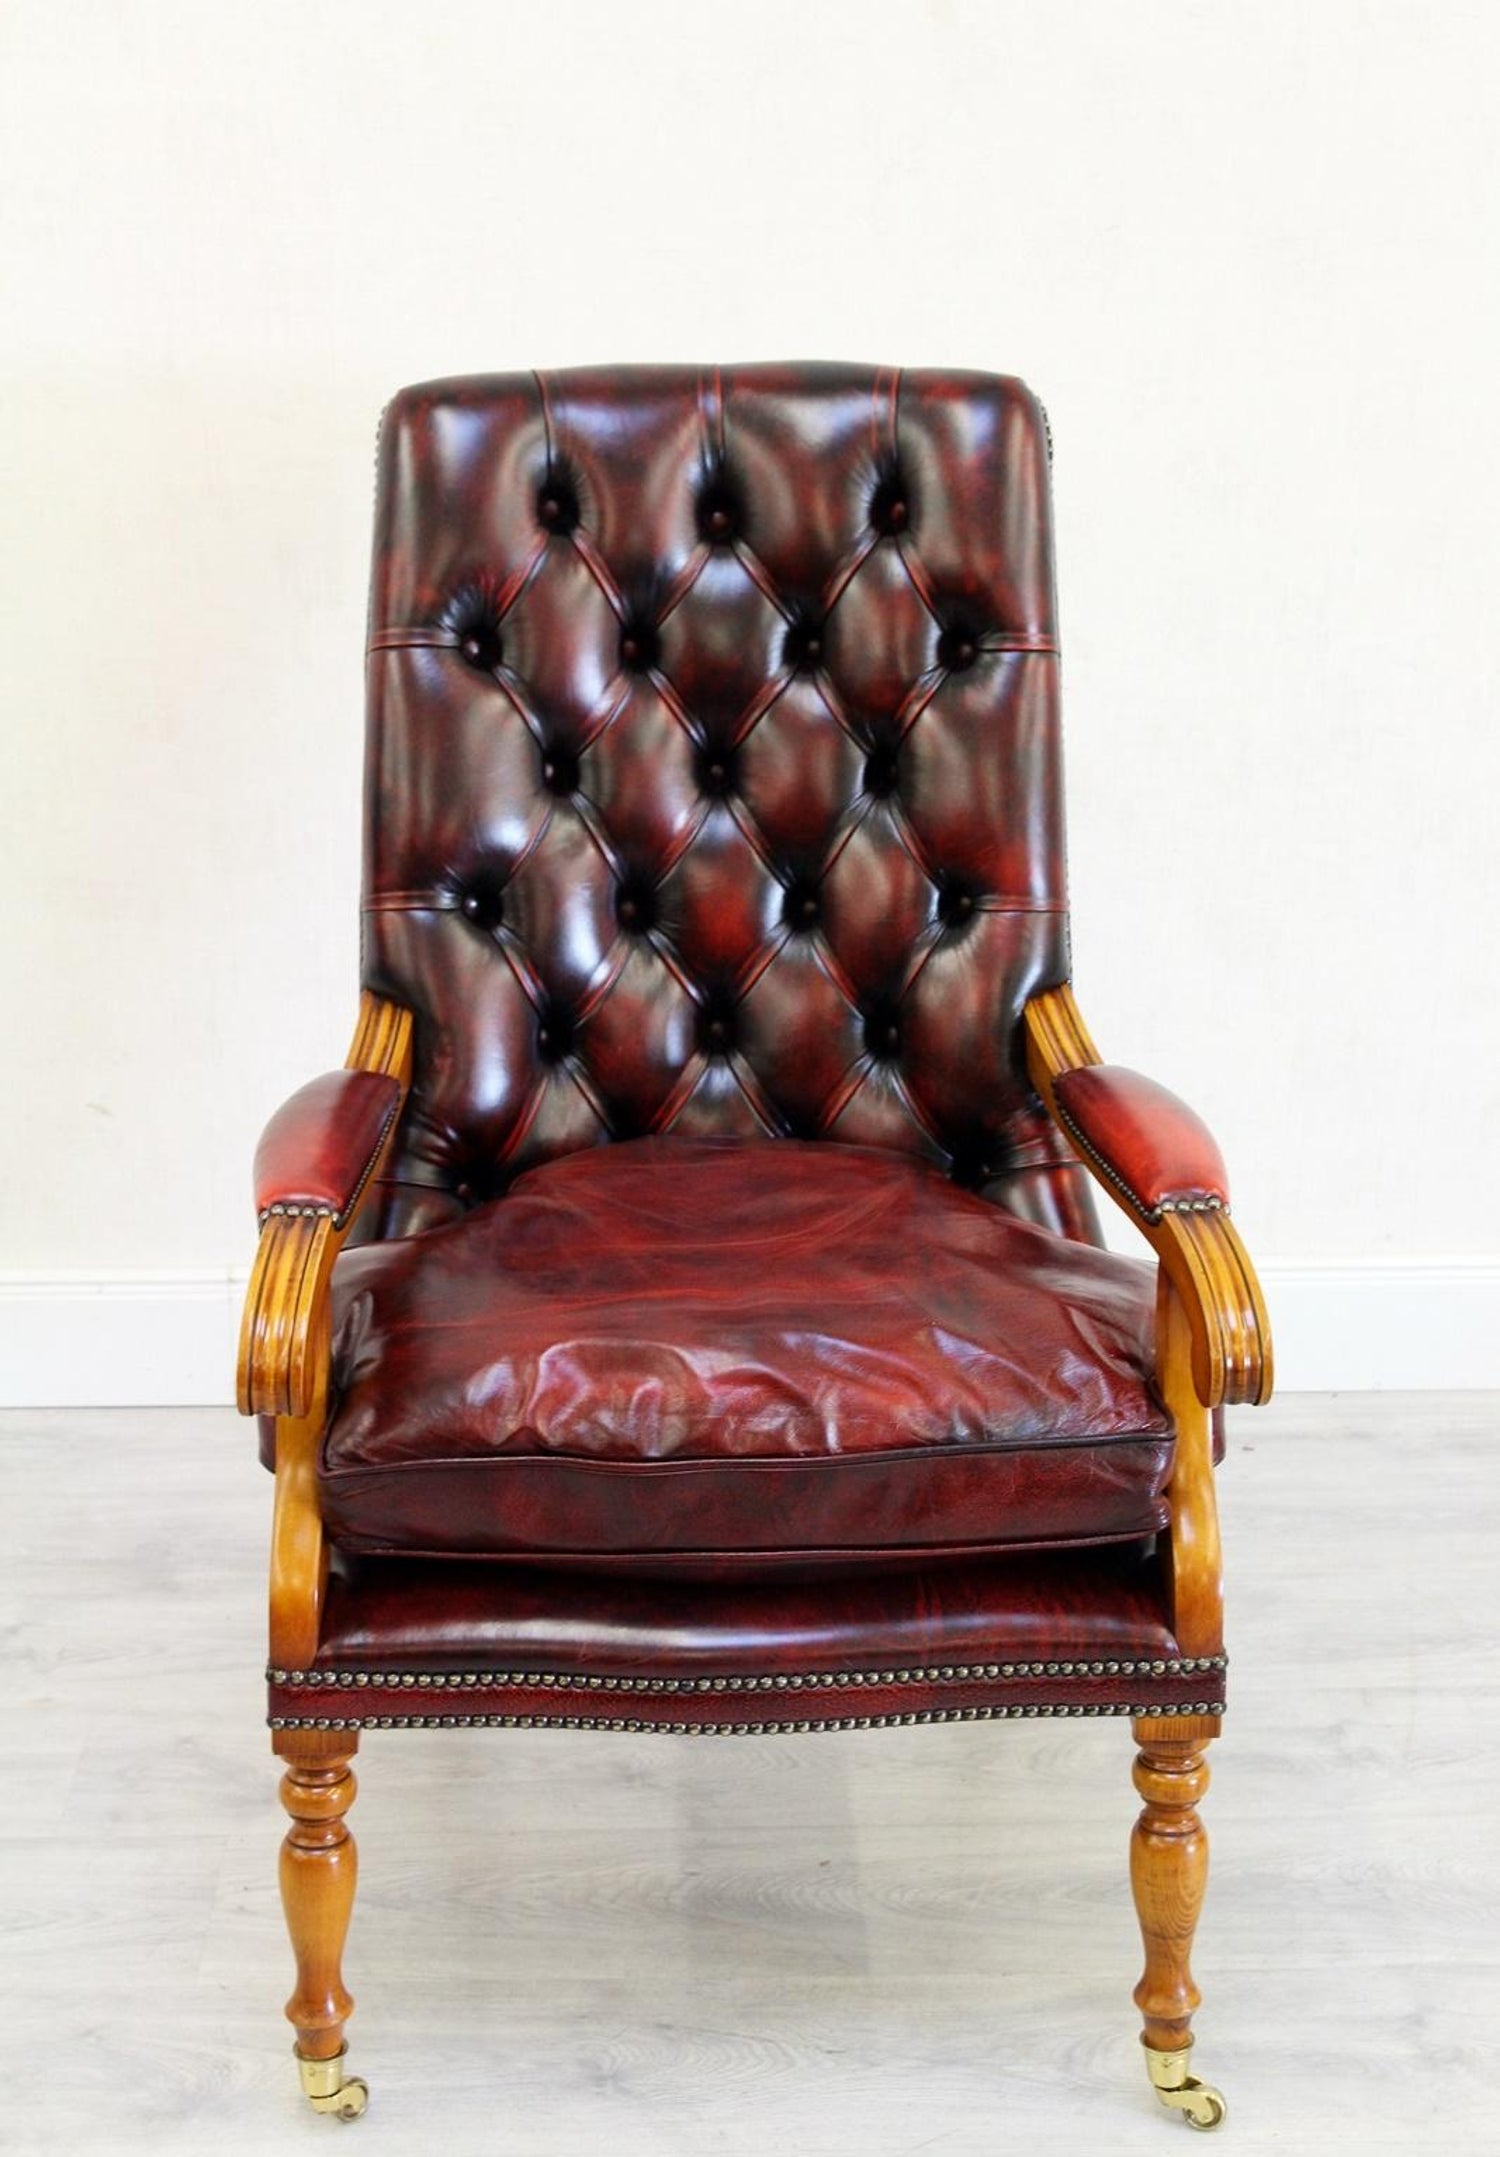 33386f6ee0b0 Office Chair Antique Chesterfield Armchair Office Chair Leather Vintage  Chair For Sale at 1stdibs